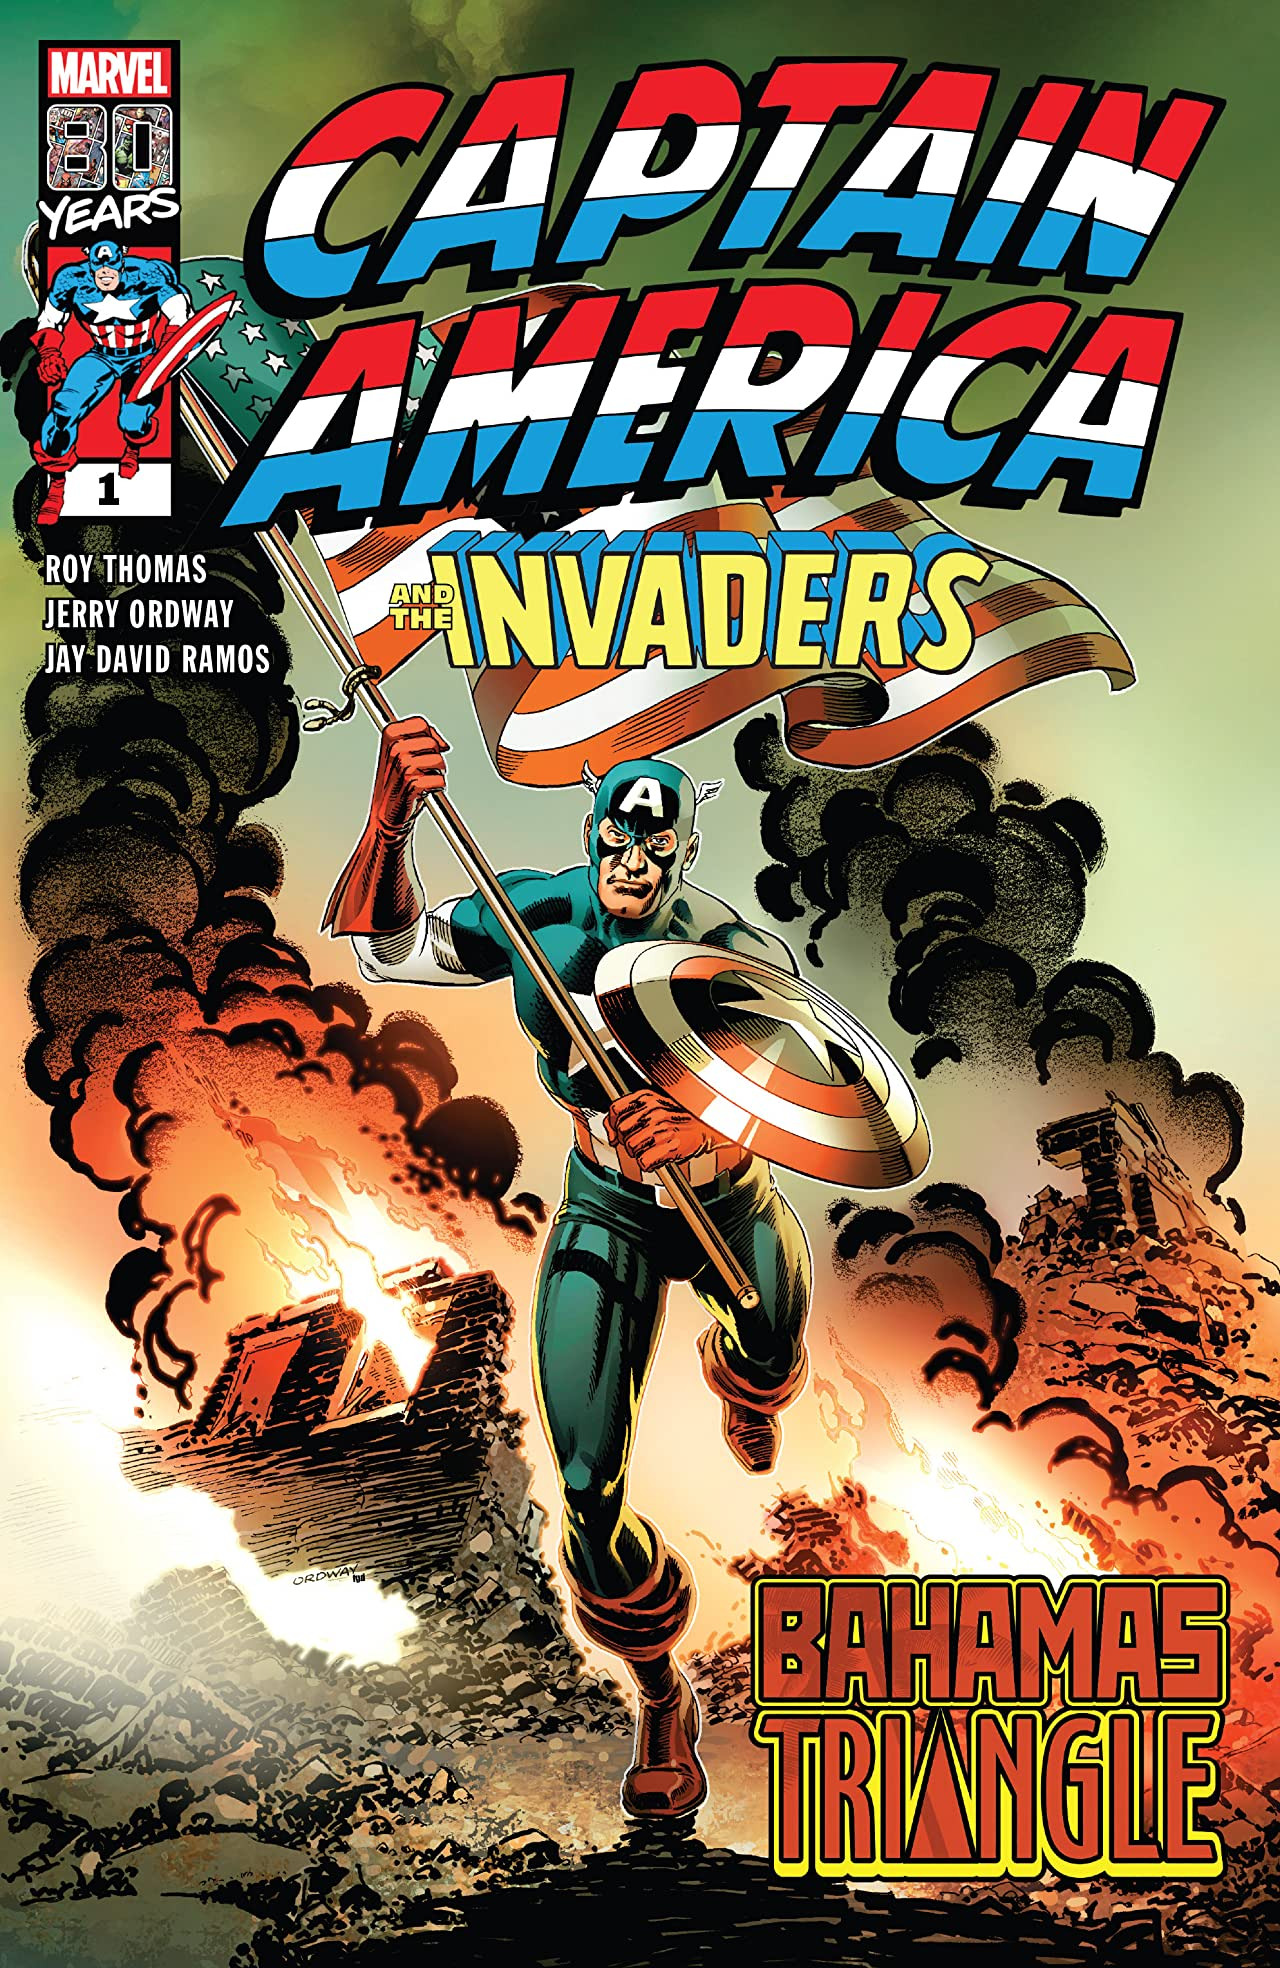 Captain America & The Invaders: The Bahamas Triangle (2019) No.1